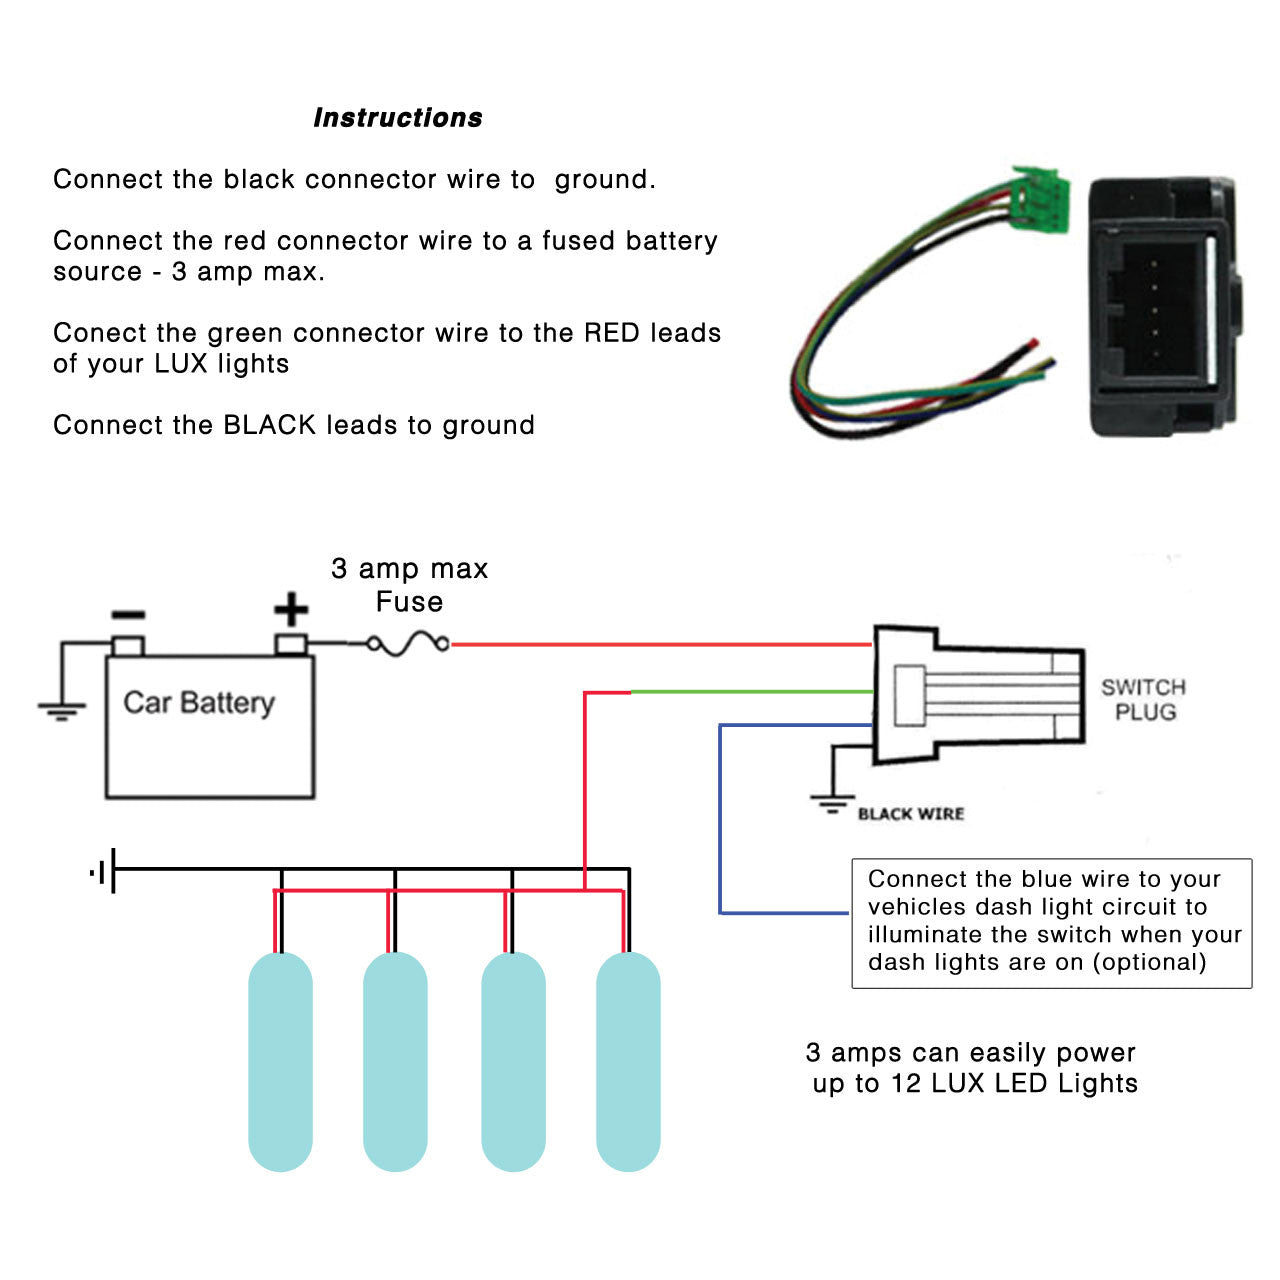 Dash Lights Wiring A Switch Up To Auto Electrical Diagram Light Archives Led Toyota 800 Series Lux Logo Lighting Systems Rh Luxlightingsystems Com 3 Wire